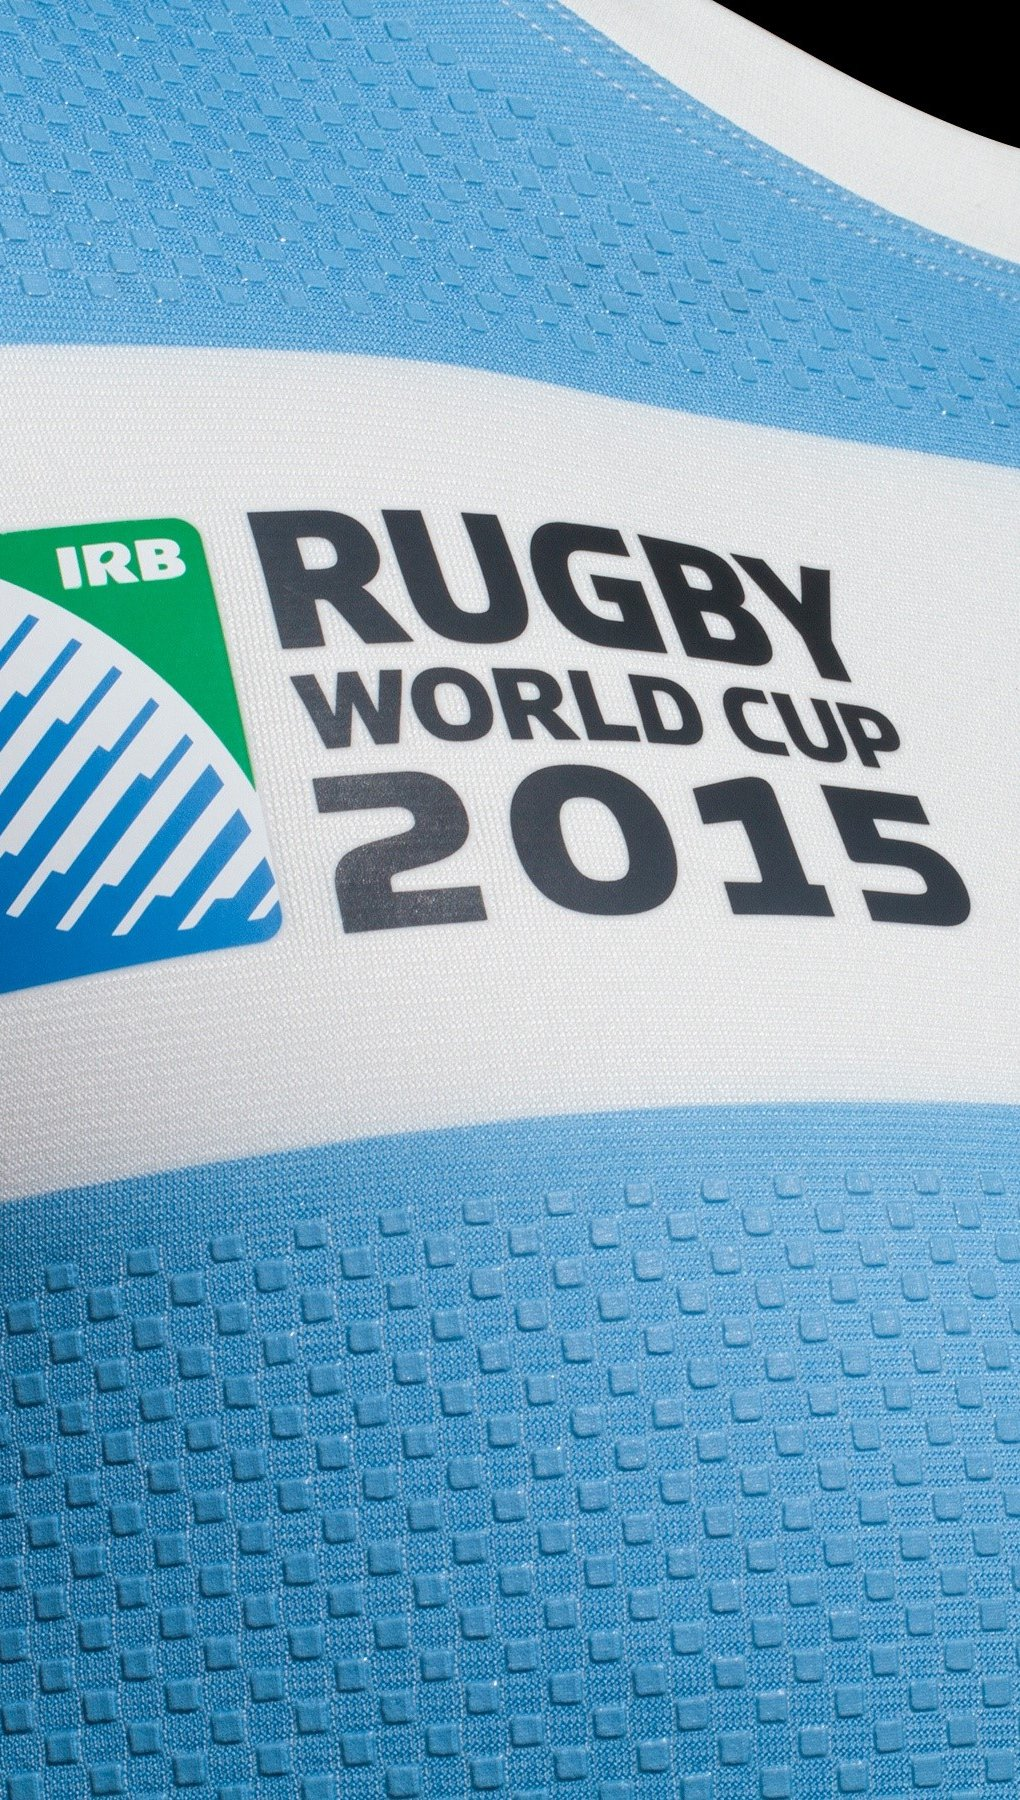 Wallpaper Rugby World Cup 2015 Vertical